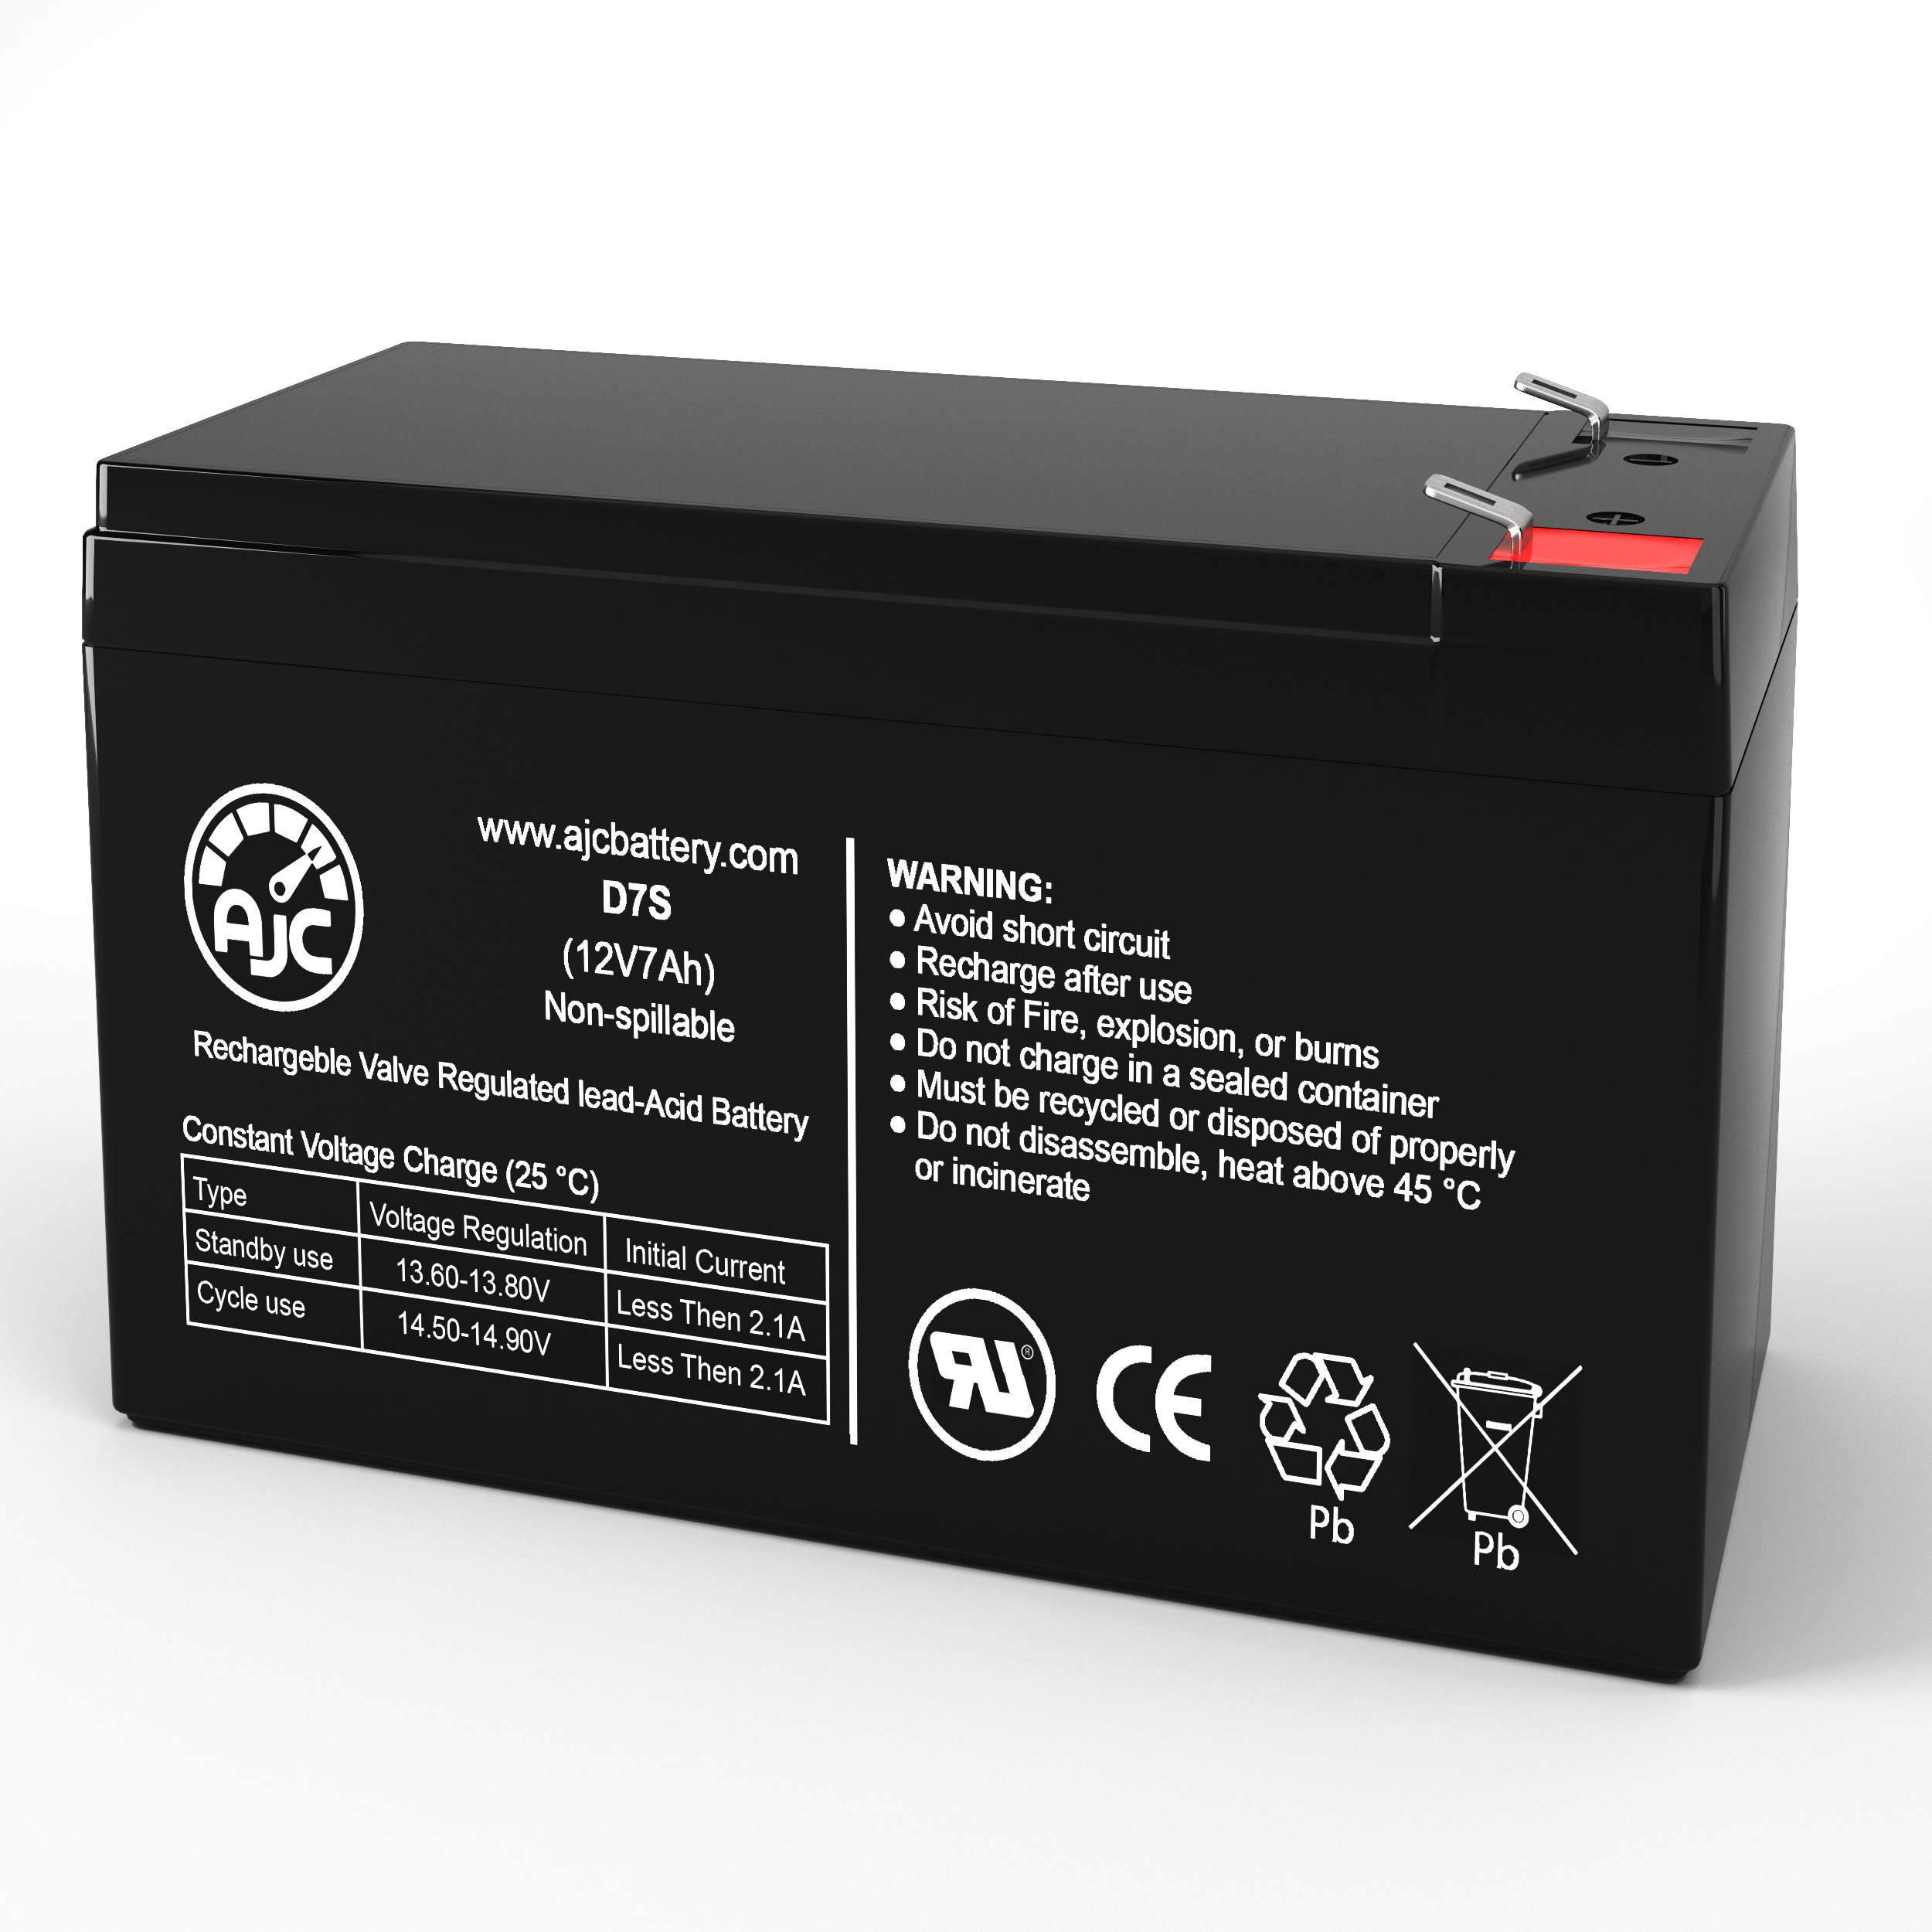 Minuteman ED6000T Base Model 12V 7Ah UPS Battery This is an AJC Brand Replacement